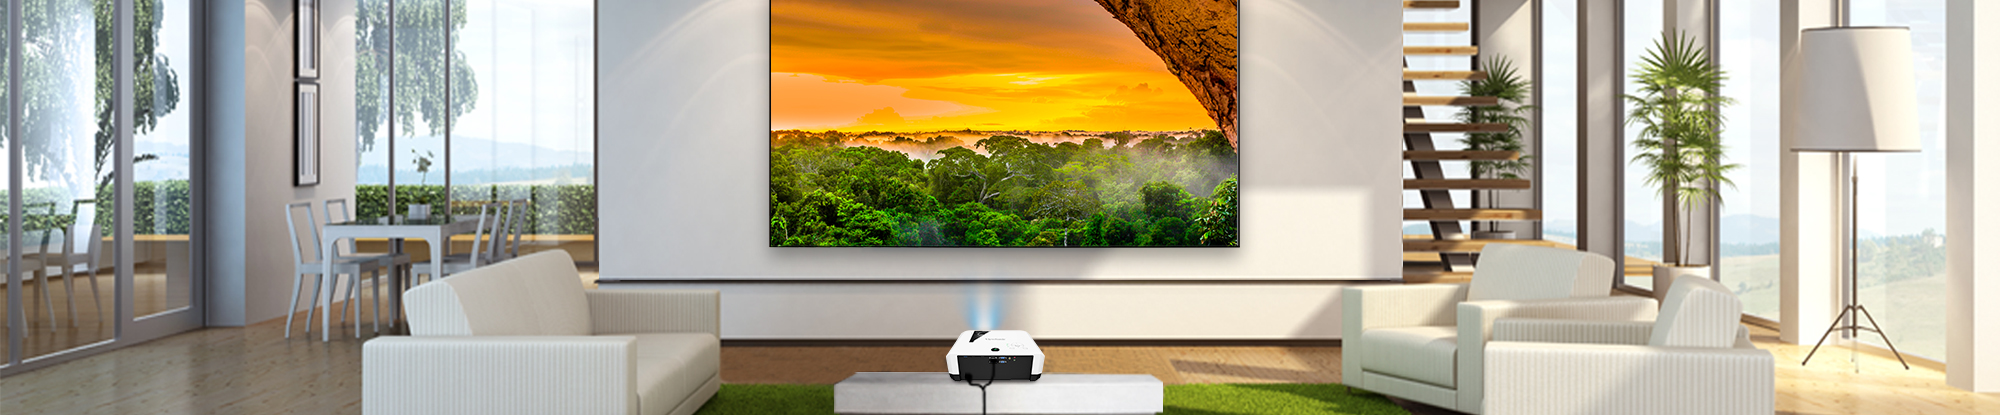 ViewSonic Introduces New 4K and 1080p Laser Projectors